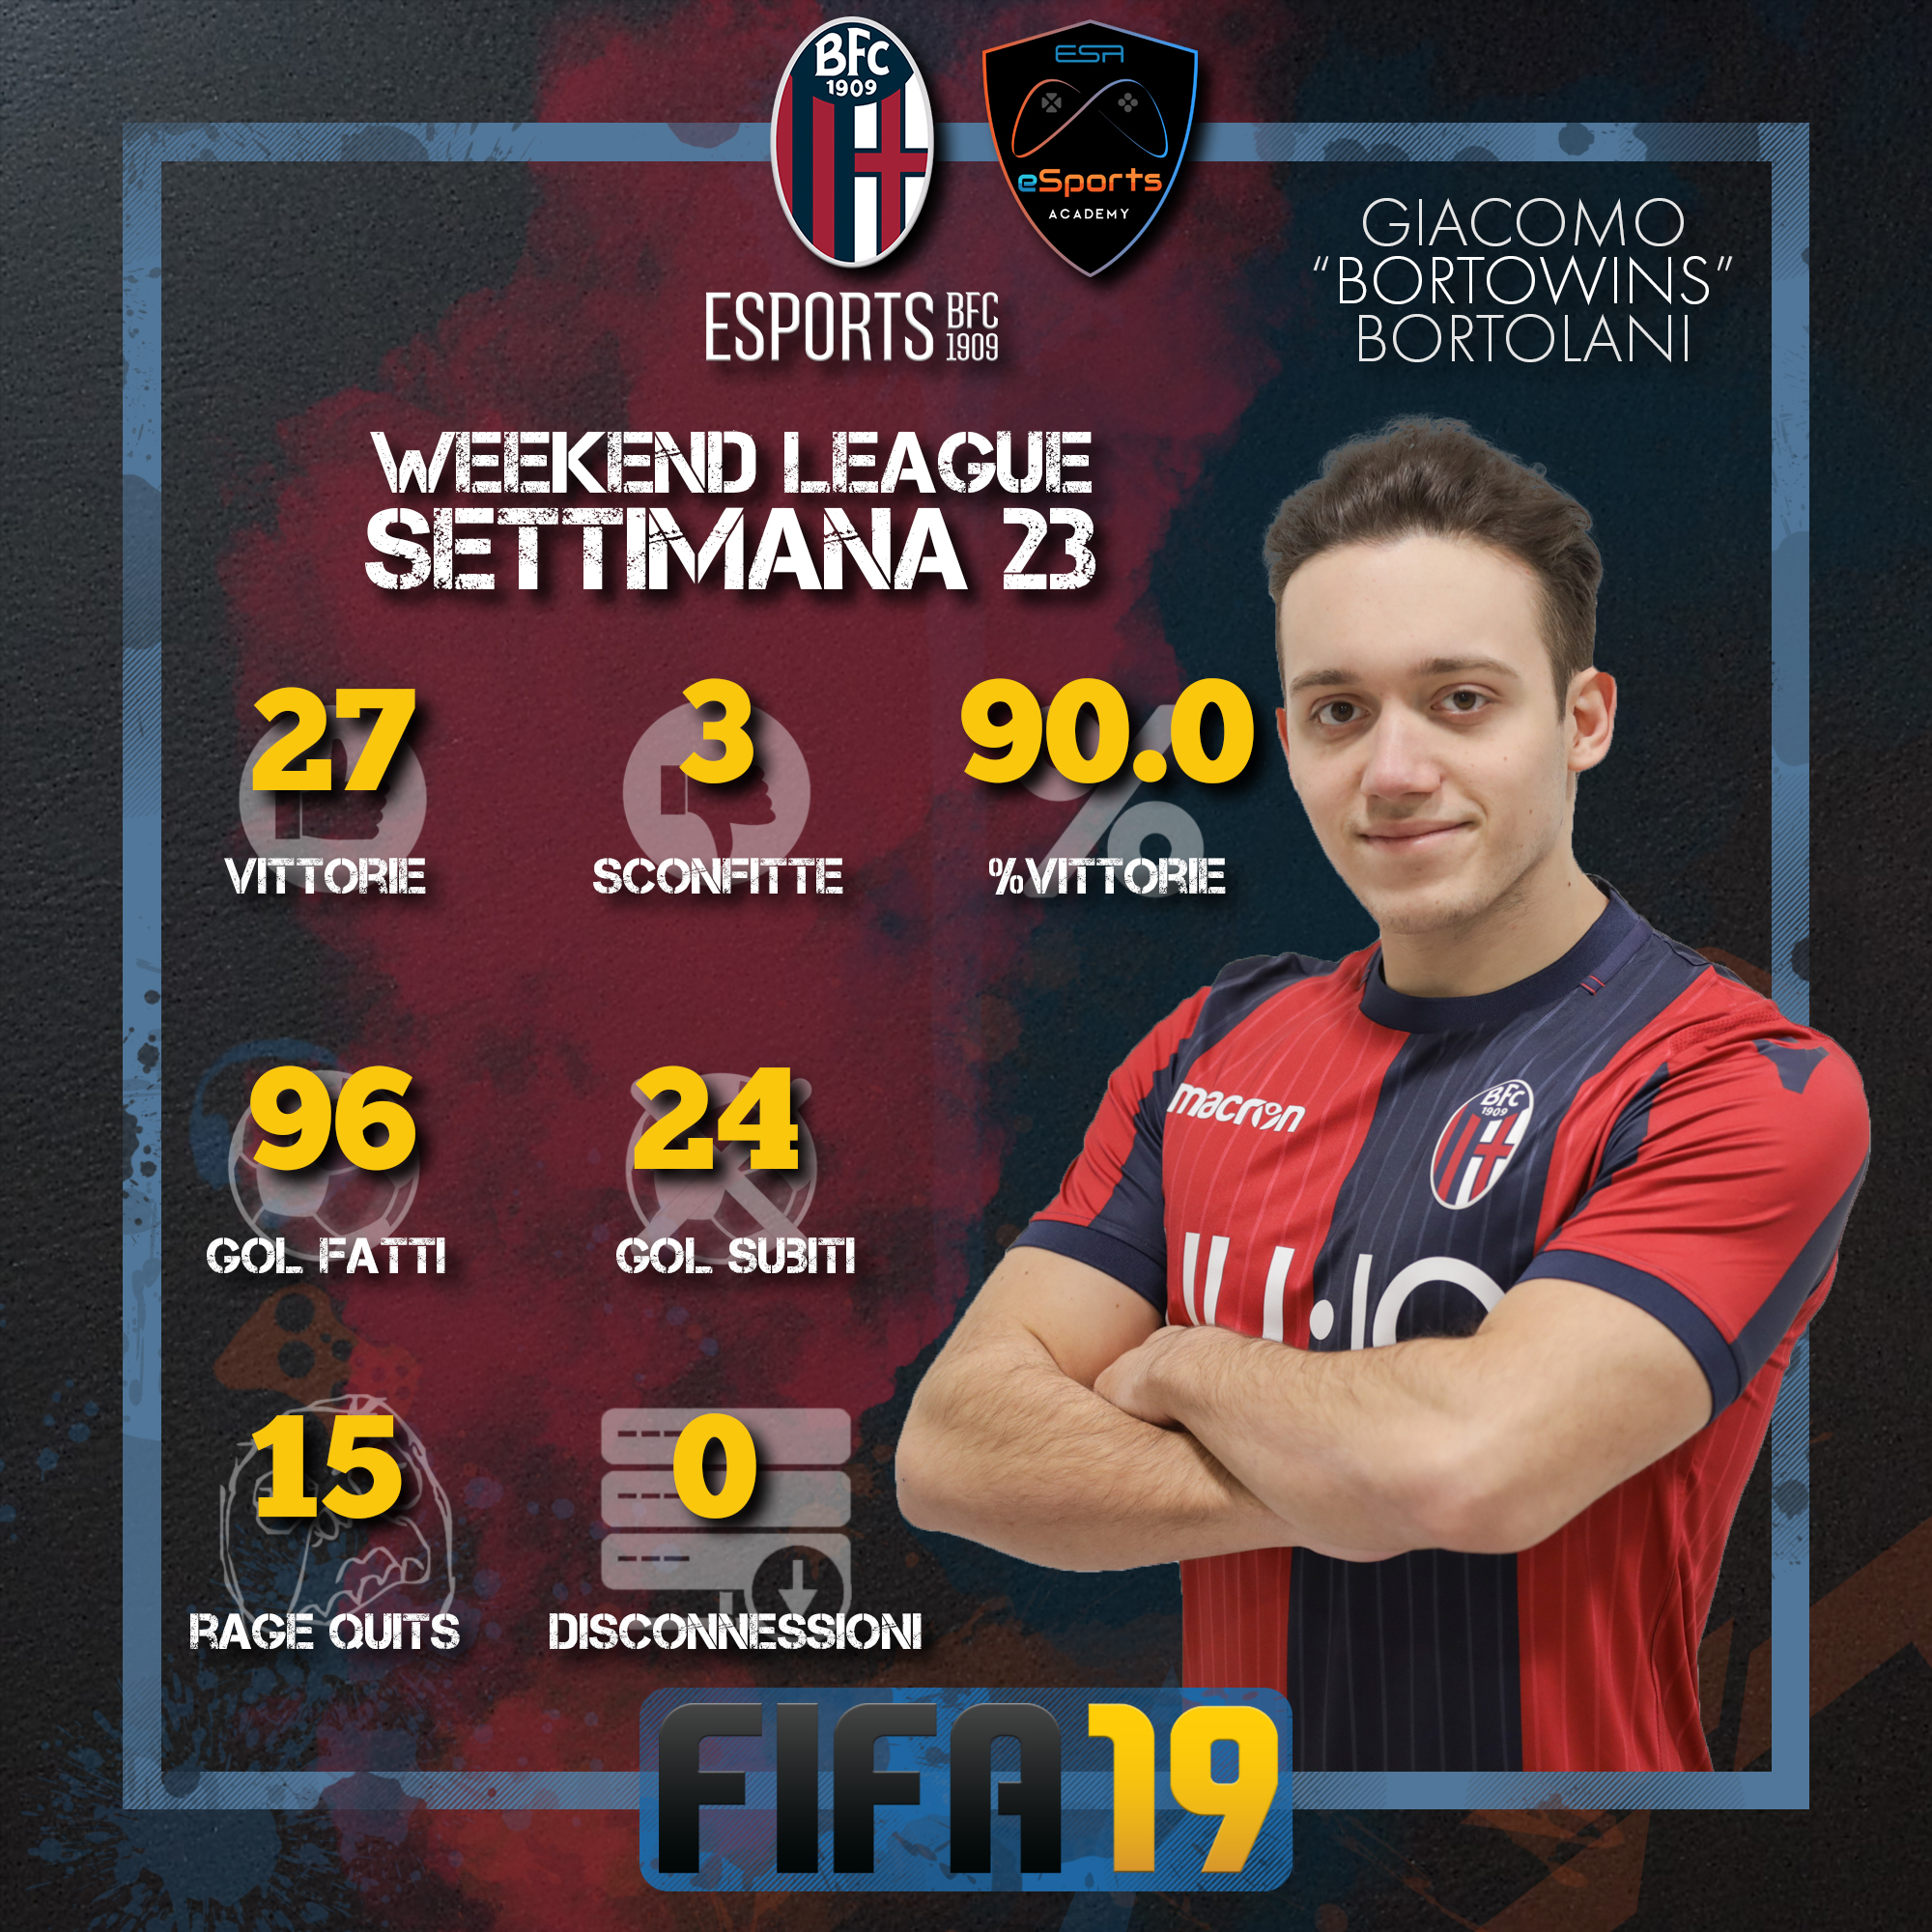 Fifa19_Weekend League_Week23_Bortowins.jpg